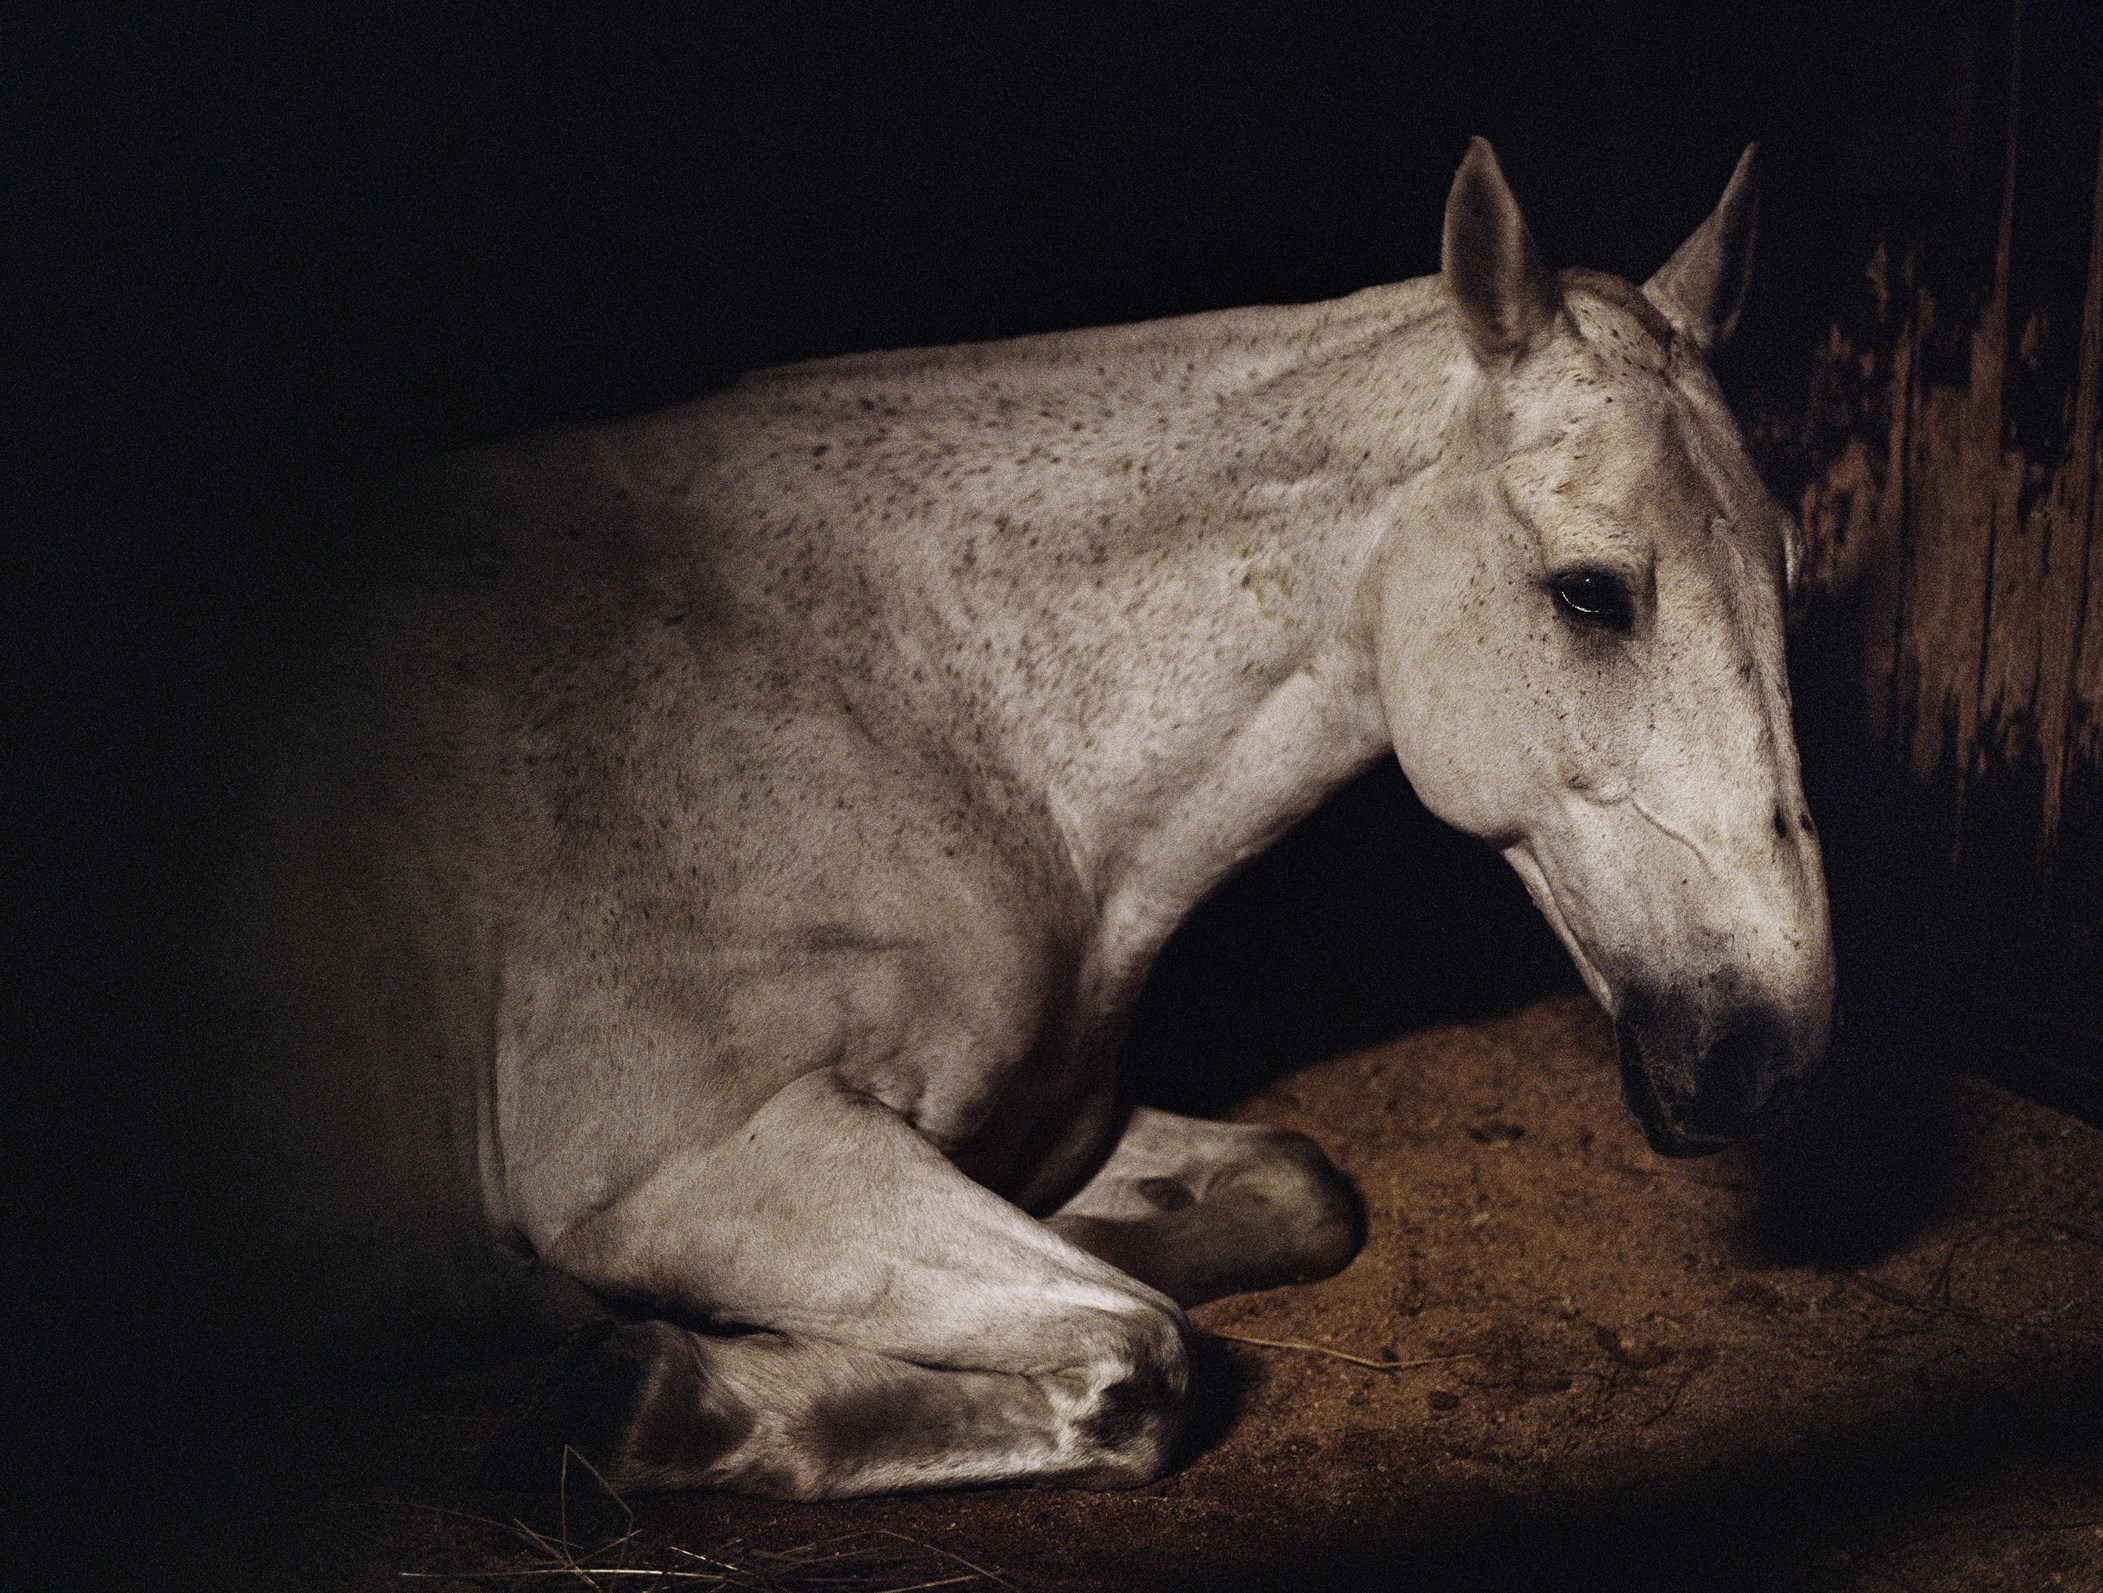 """One of the photos from the Silver Eye exhibit """"Anima"""" by Charlotte Dumas."""